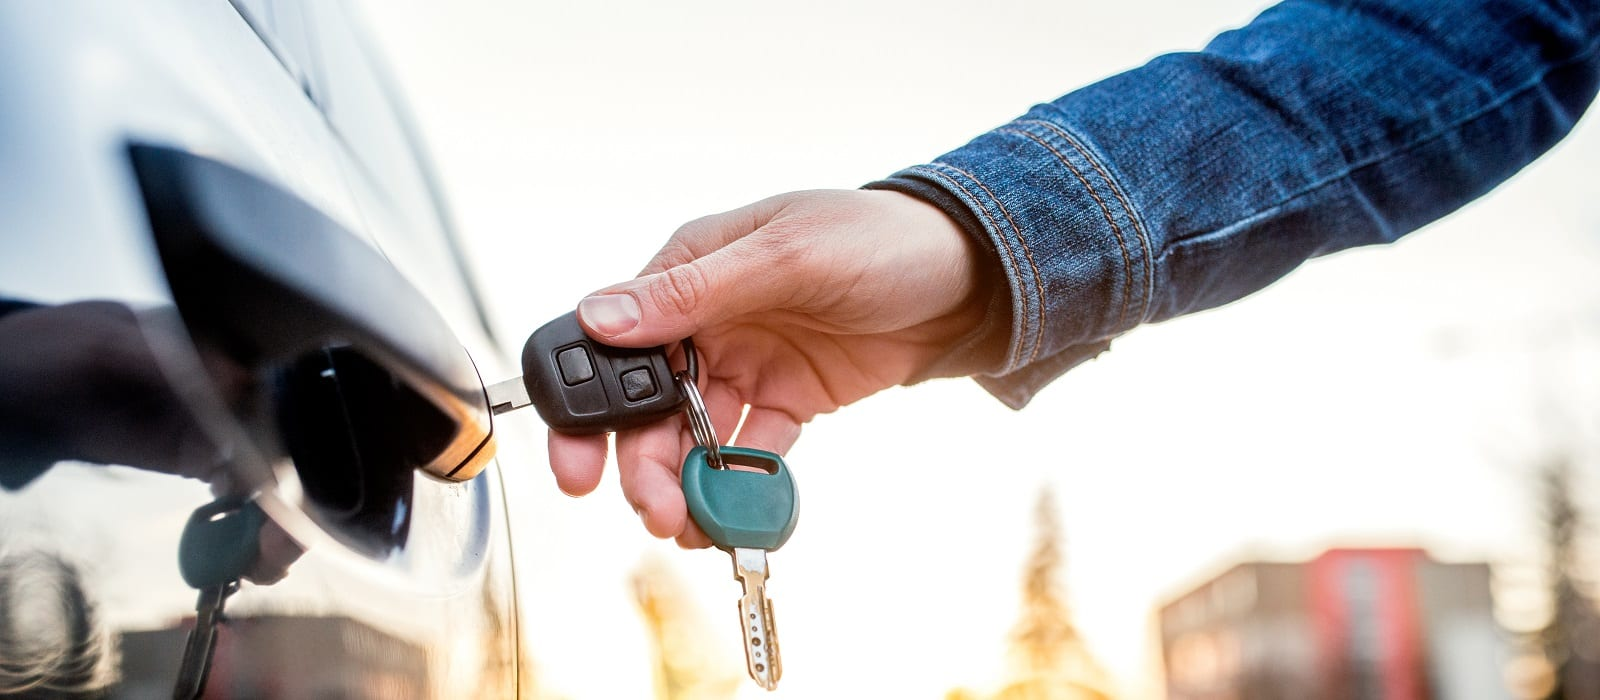 Unrecognizable woman opening her car with a key